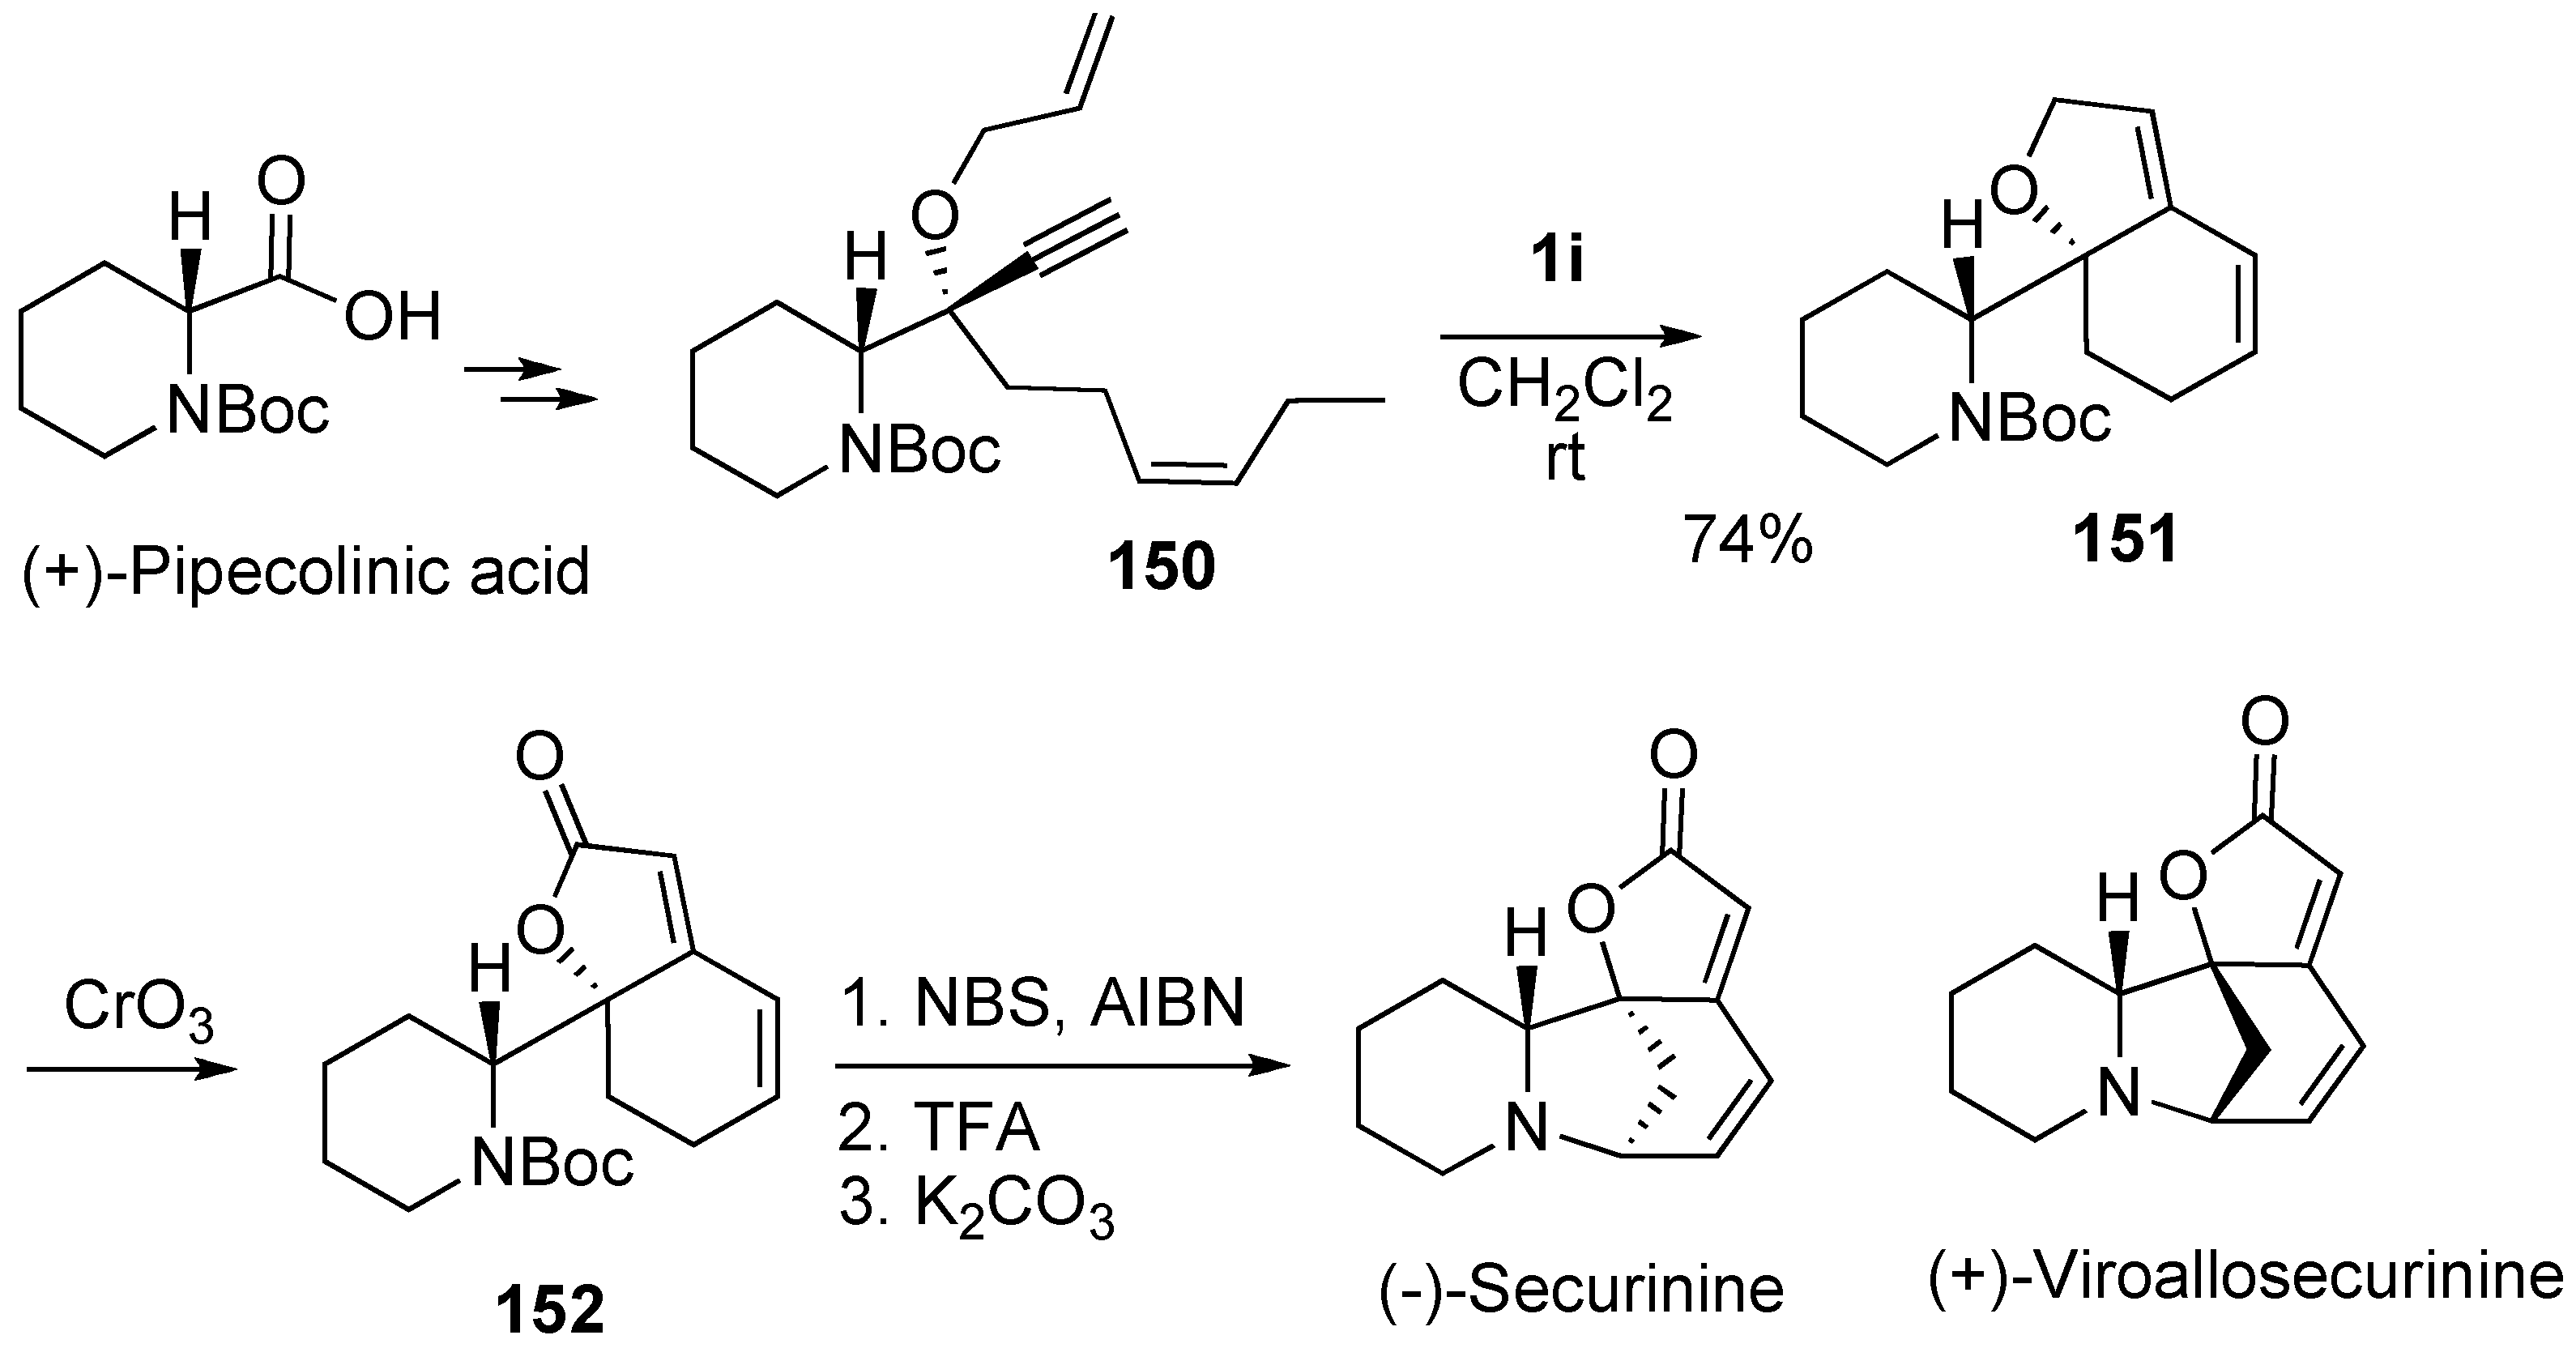 enyne metathesis reaction mechanism Olefin cross metathesis: a model in selectivity  •low catalyst activity to effect a reaction without an  intermolecular enyne metathesis connon, sj.